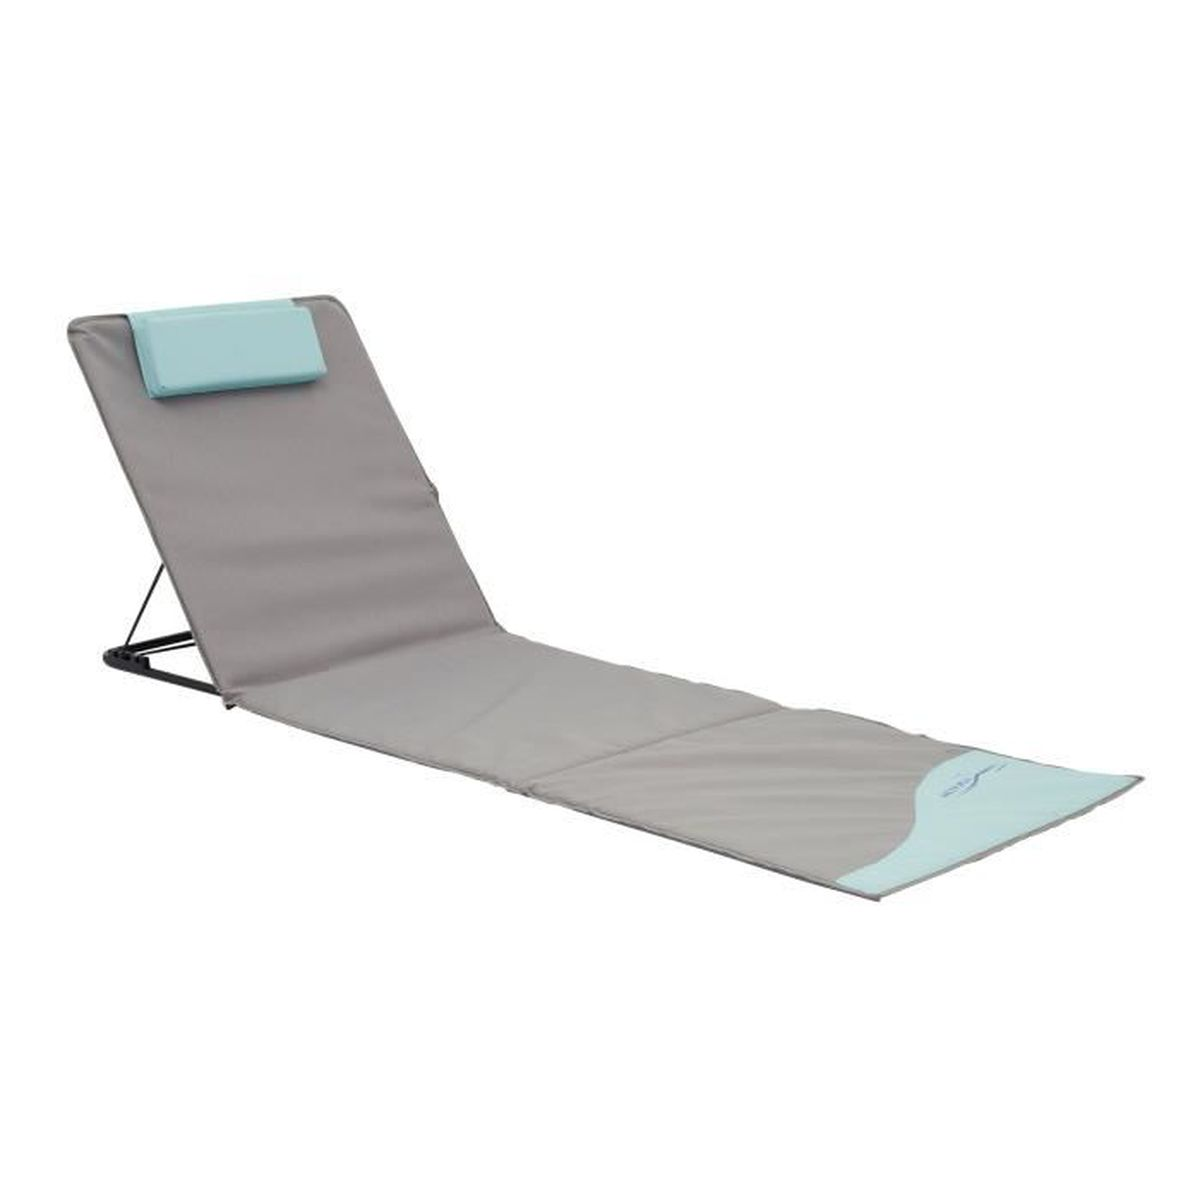 tapis de plage pliant xxl avec dossier et oreiller de t te bleu gris 200 x 60 x 3 cm avec. Black Bedroom Furniture Sets. Home Design Ideas